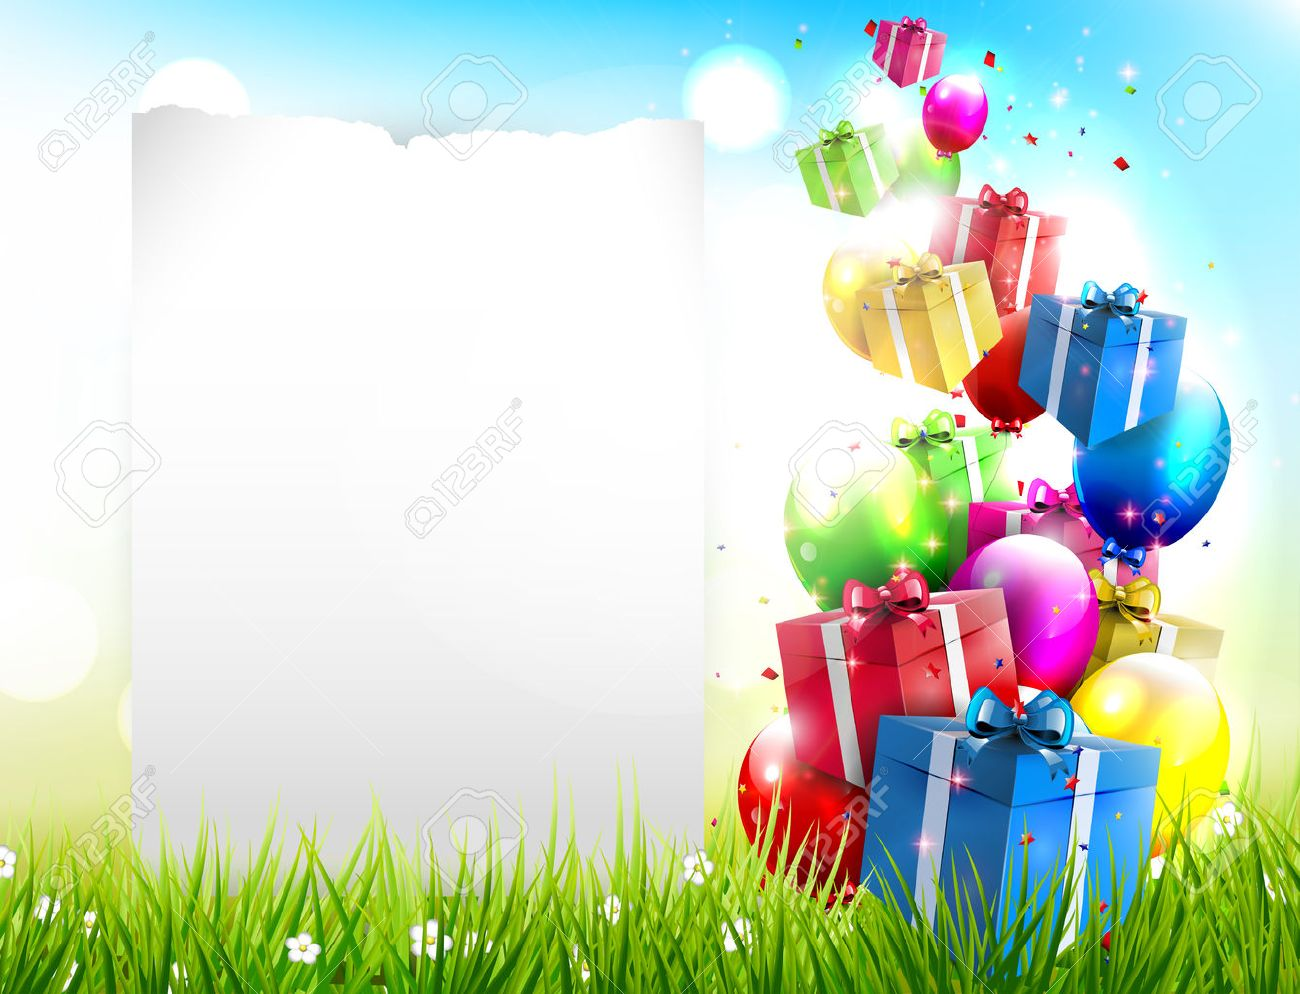 birthday background images Birthday Background With Place For Text Royalty Free Cliparts  birthday background images